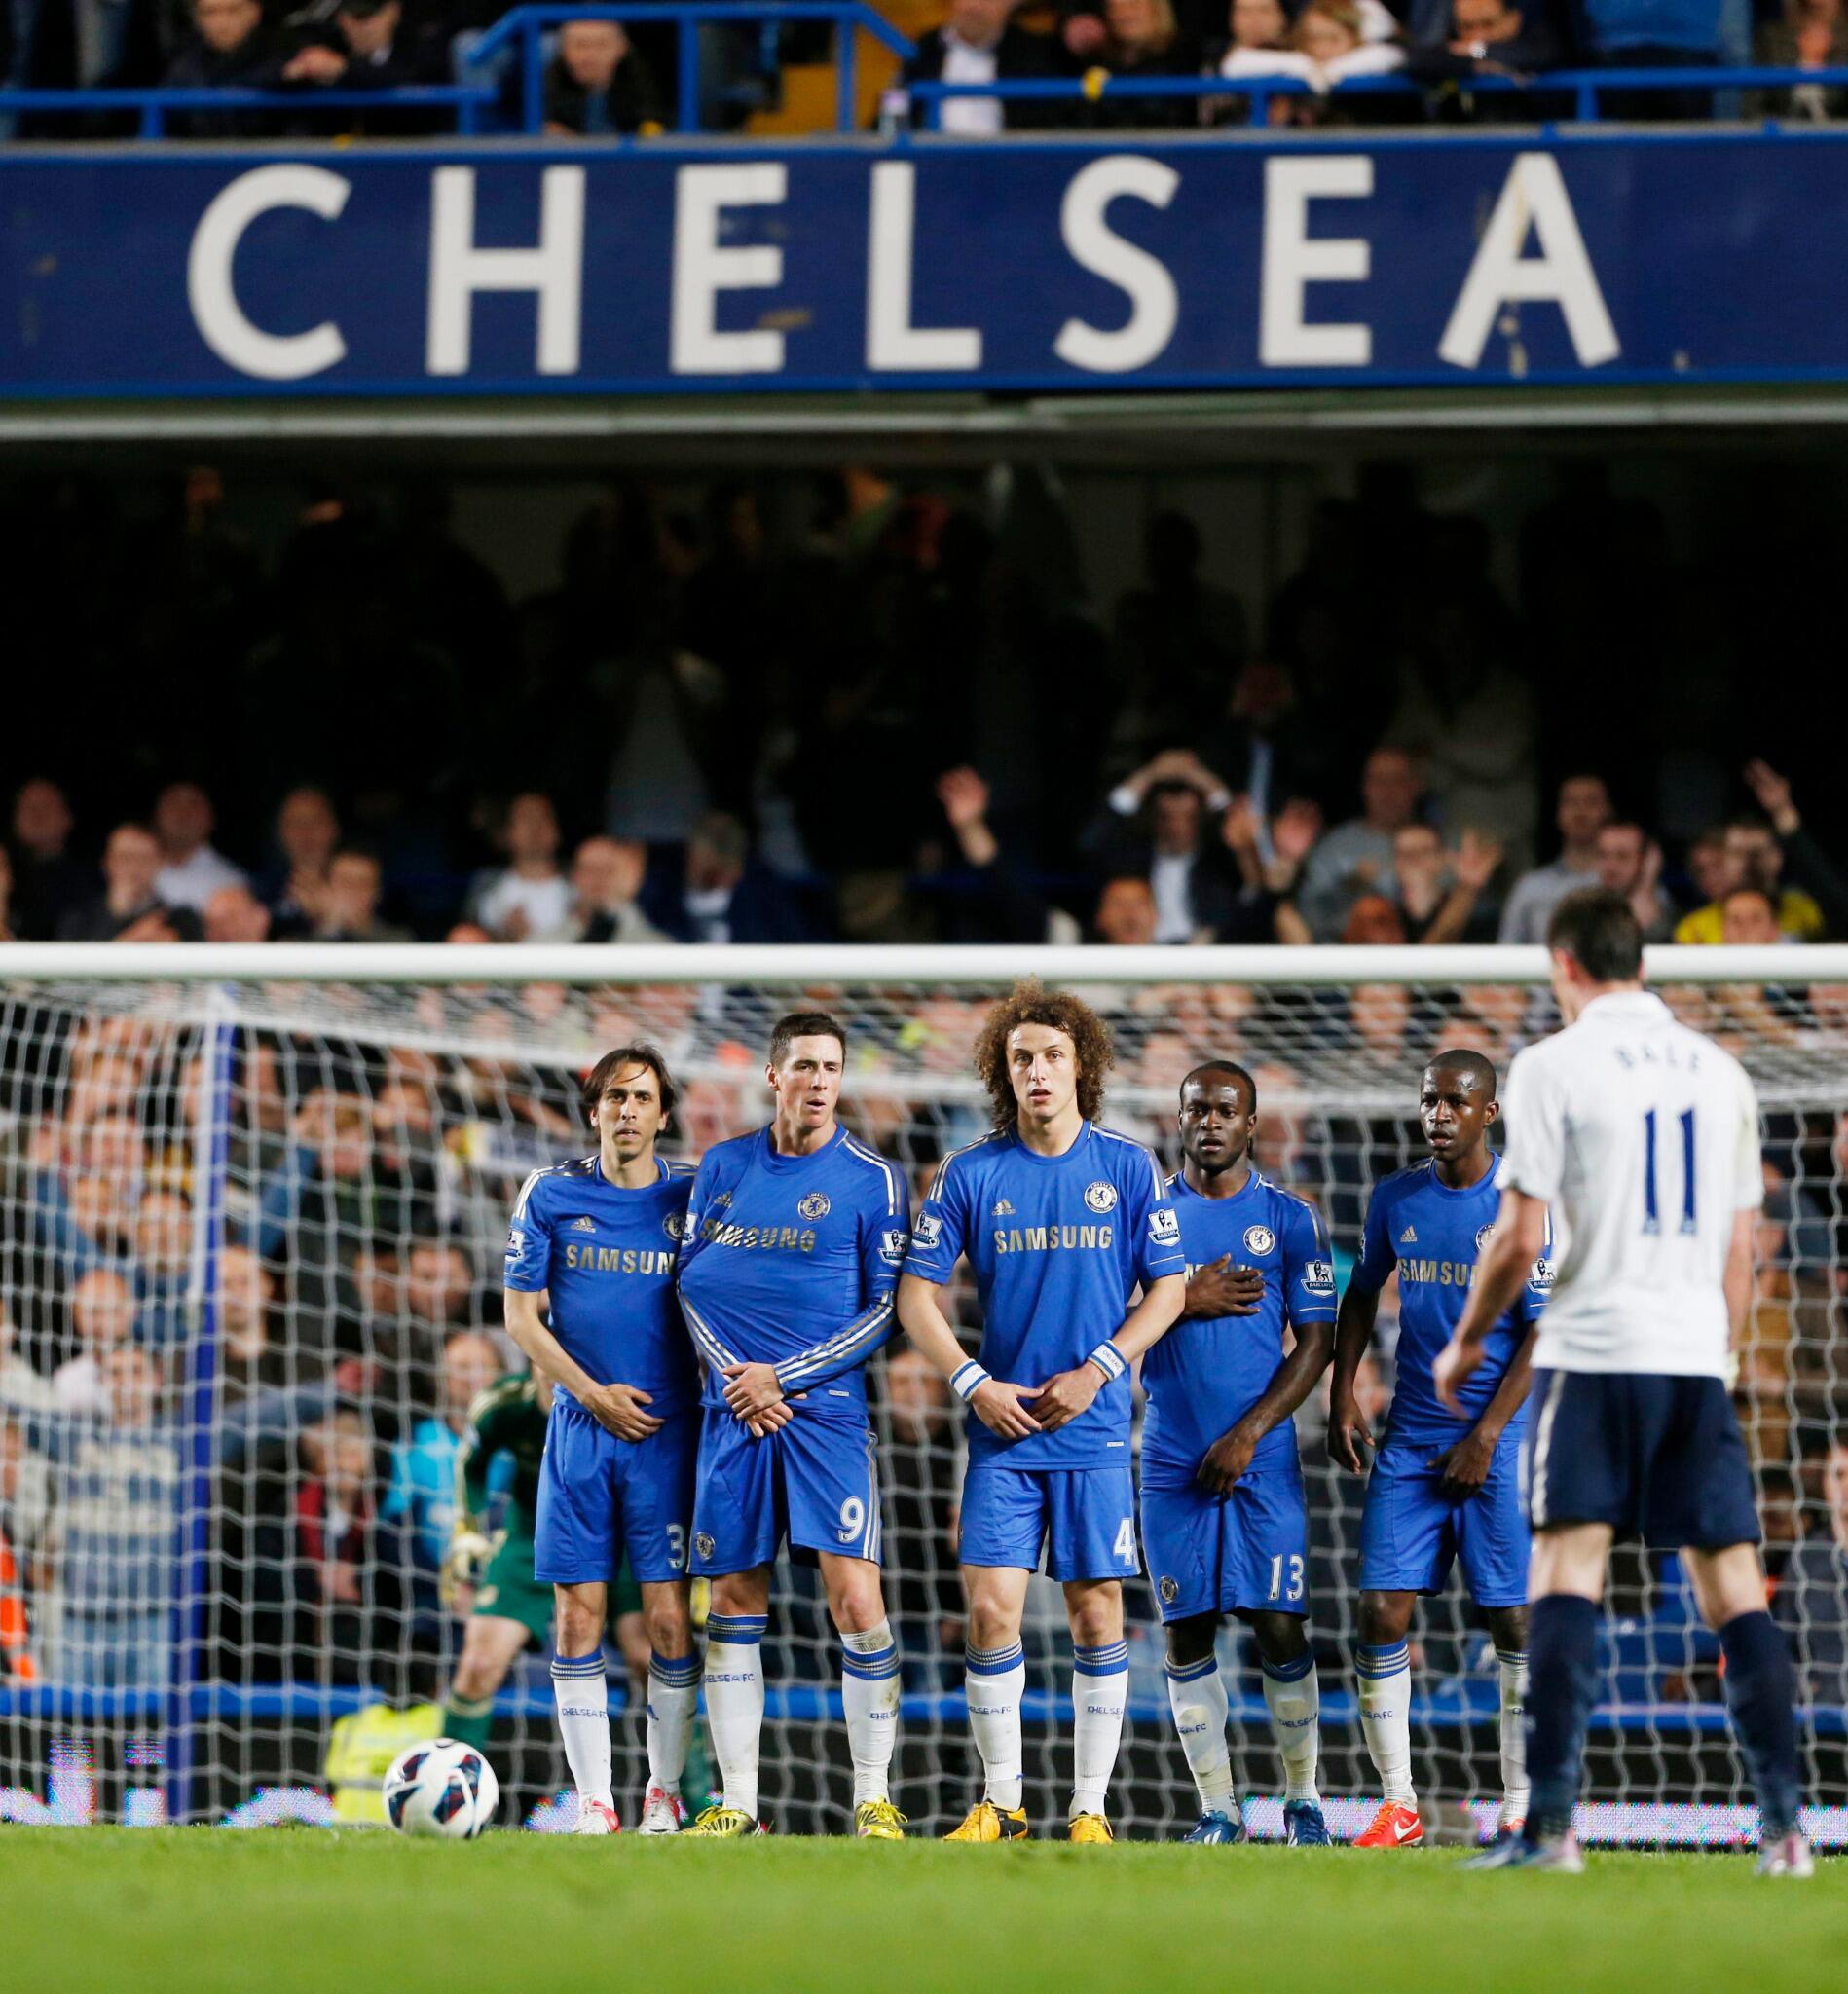 PHOTO Gareth Bale had a late free-kick chance to win it for Tottenham, but it wasn't to be on this occasion. #CHETOT http://t.co/0AYqAgcLS6